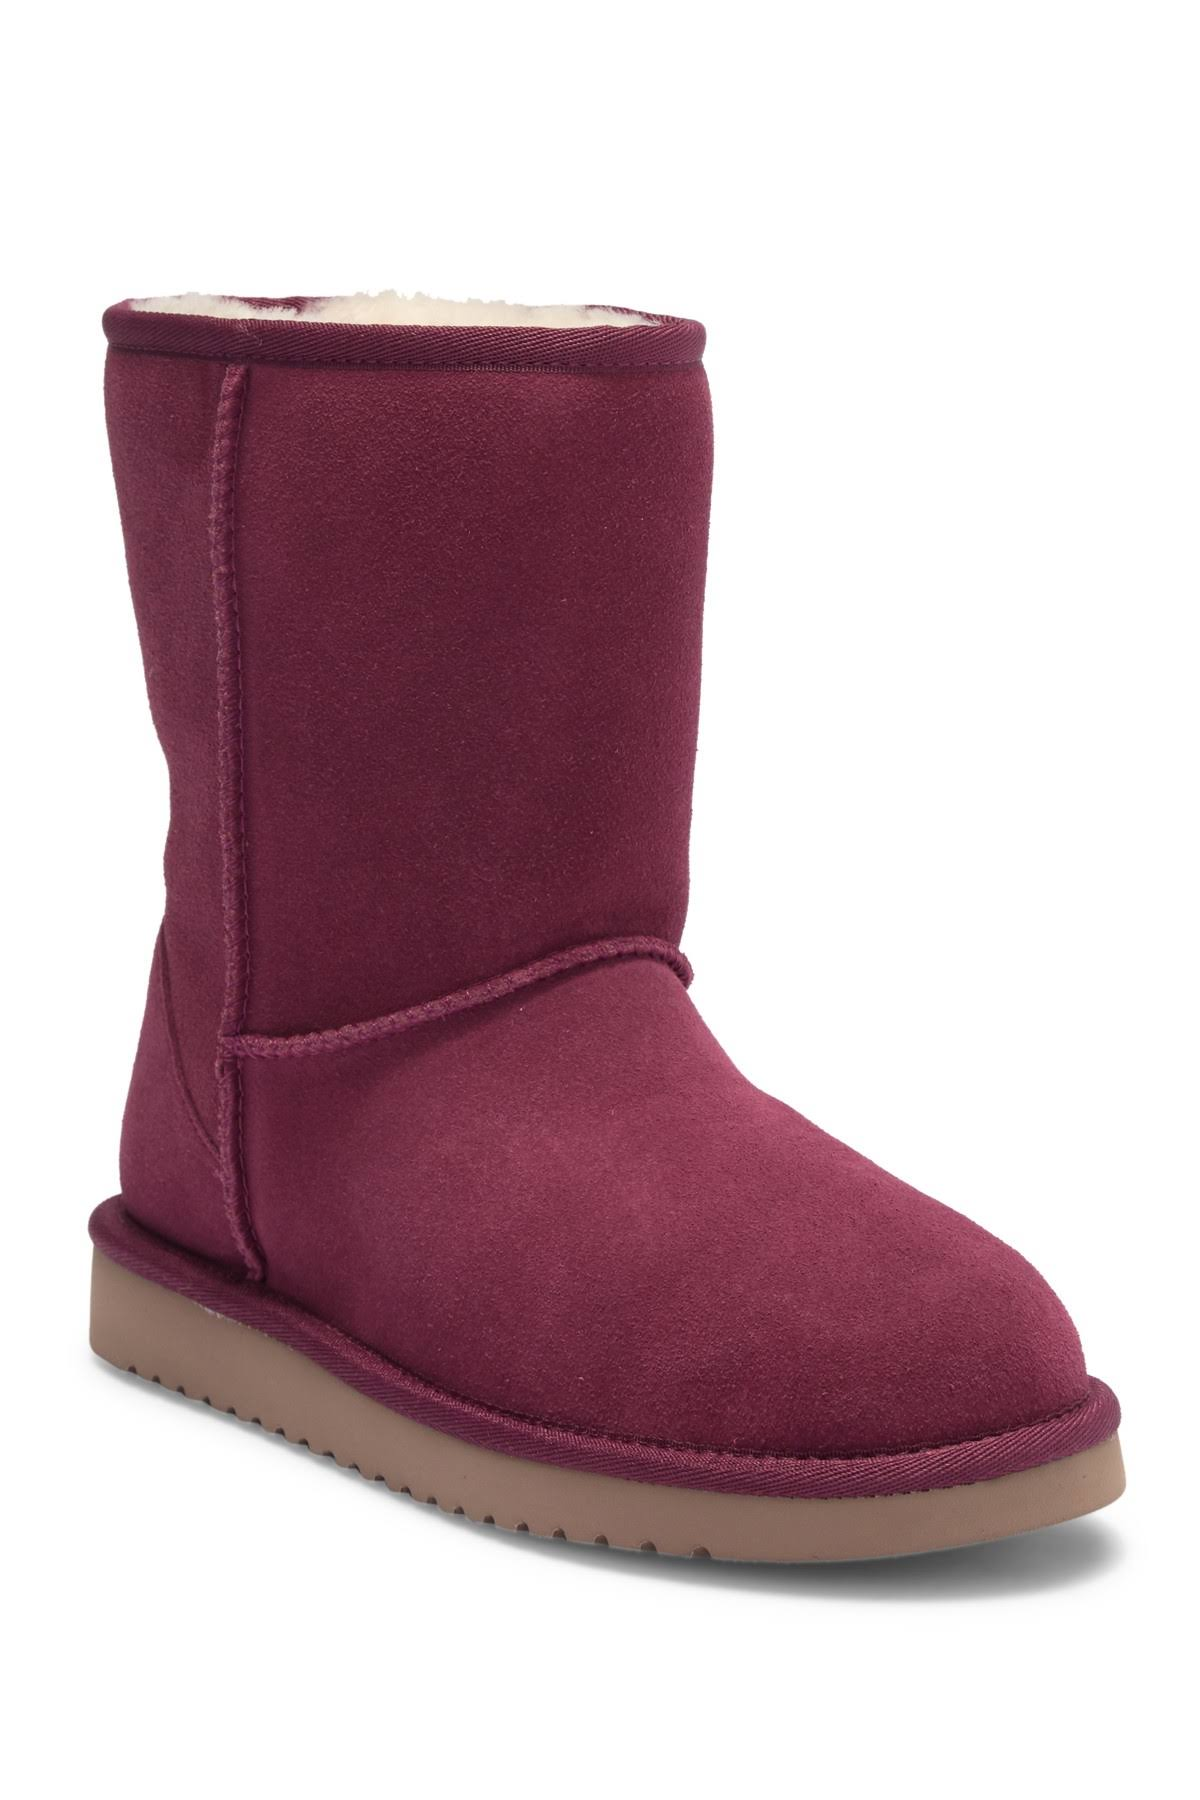 Rose Para By Boot Mujer Short Koola Ugg Koolaburra Fashion vqw1Y00d